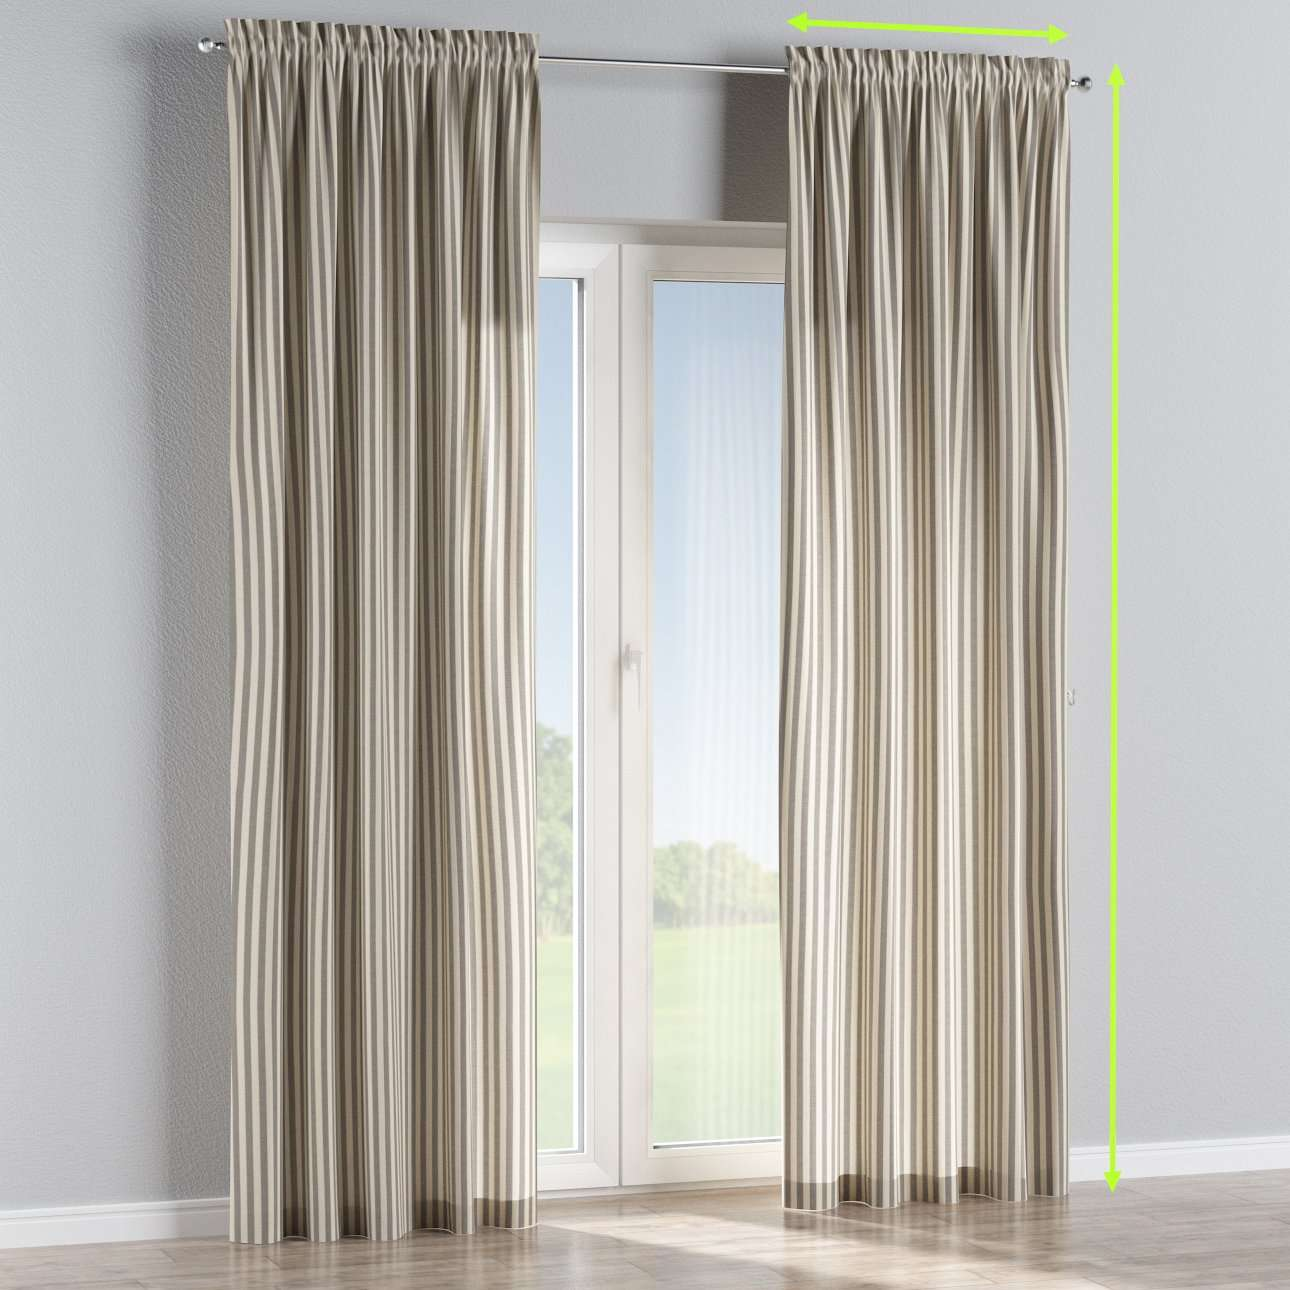 Slot and frill curtains in collection Quadro, fabric: 136-12